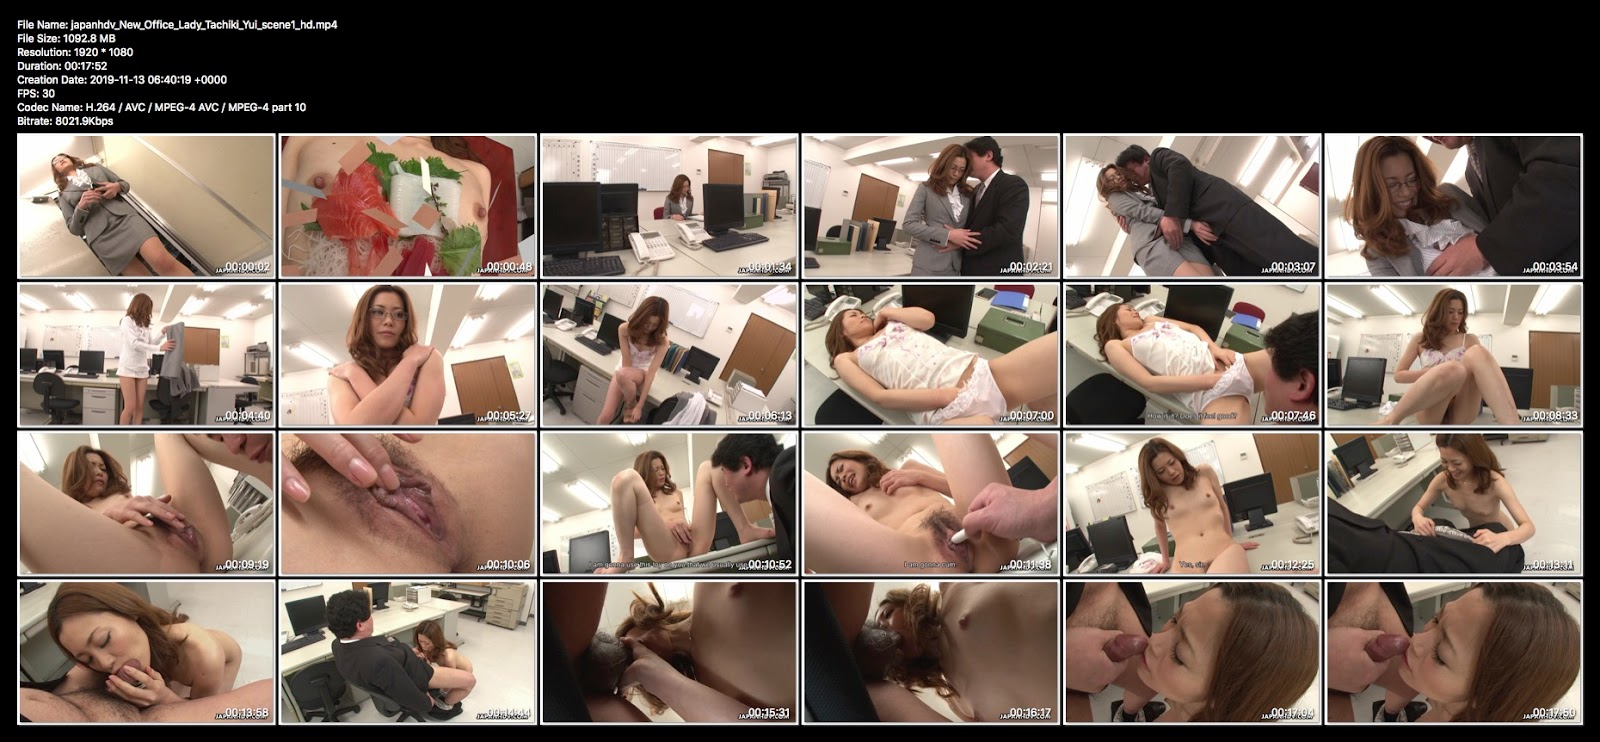 japanhdv New_Office_Lady_Tachiki_Yui_scene1_hd - Girlsdelta